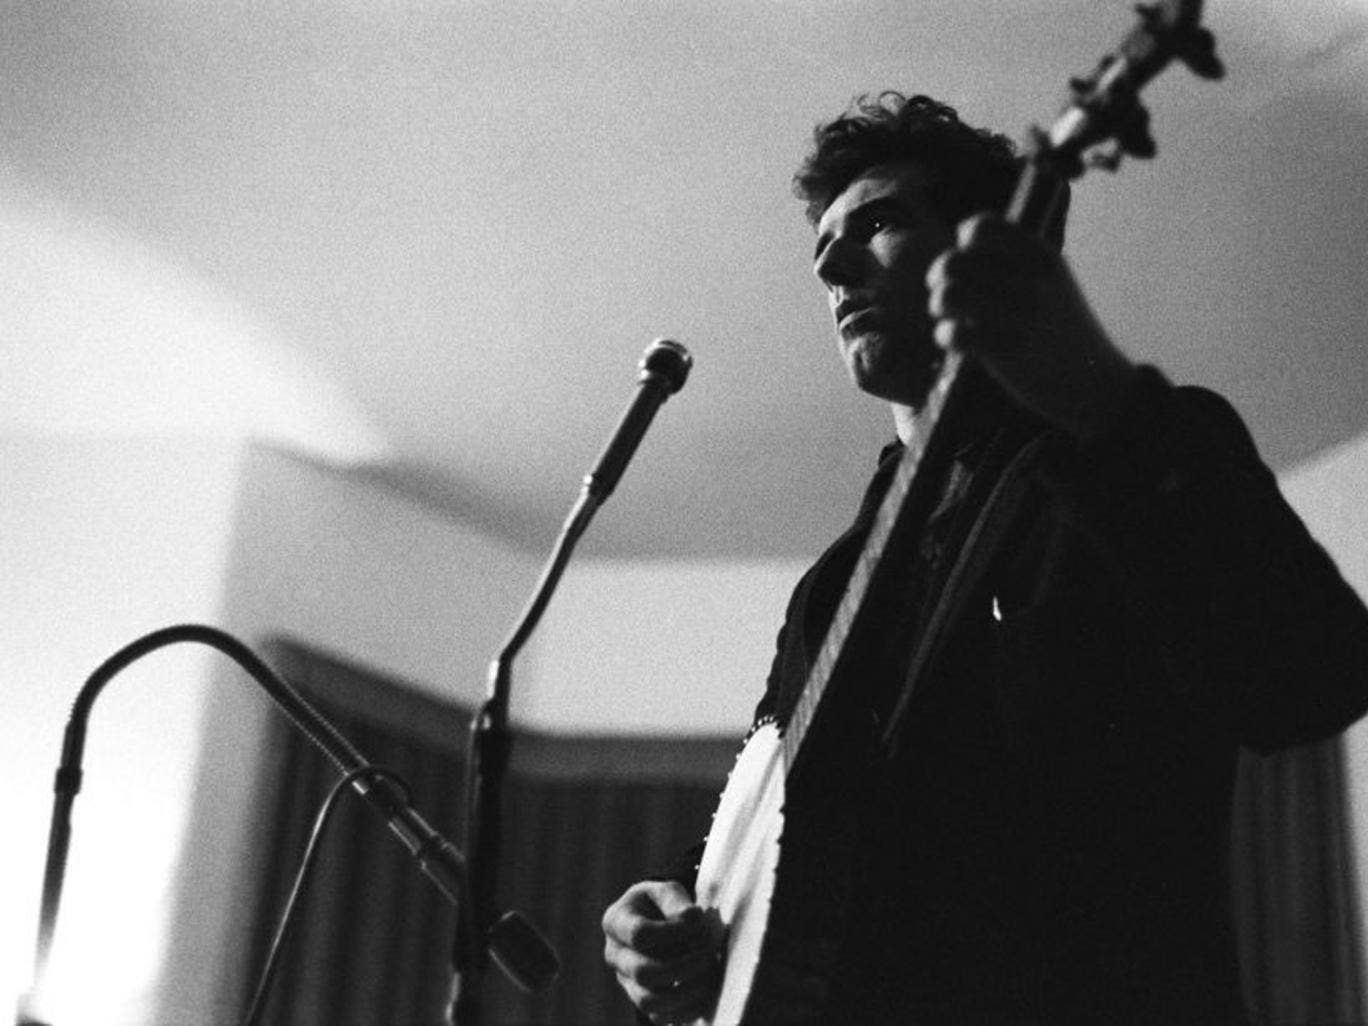 Killen in 1962 recording his contribution to 'The Iron Muse', an album of industrial songs